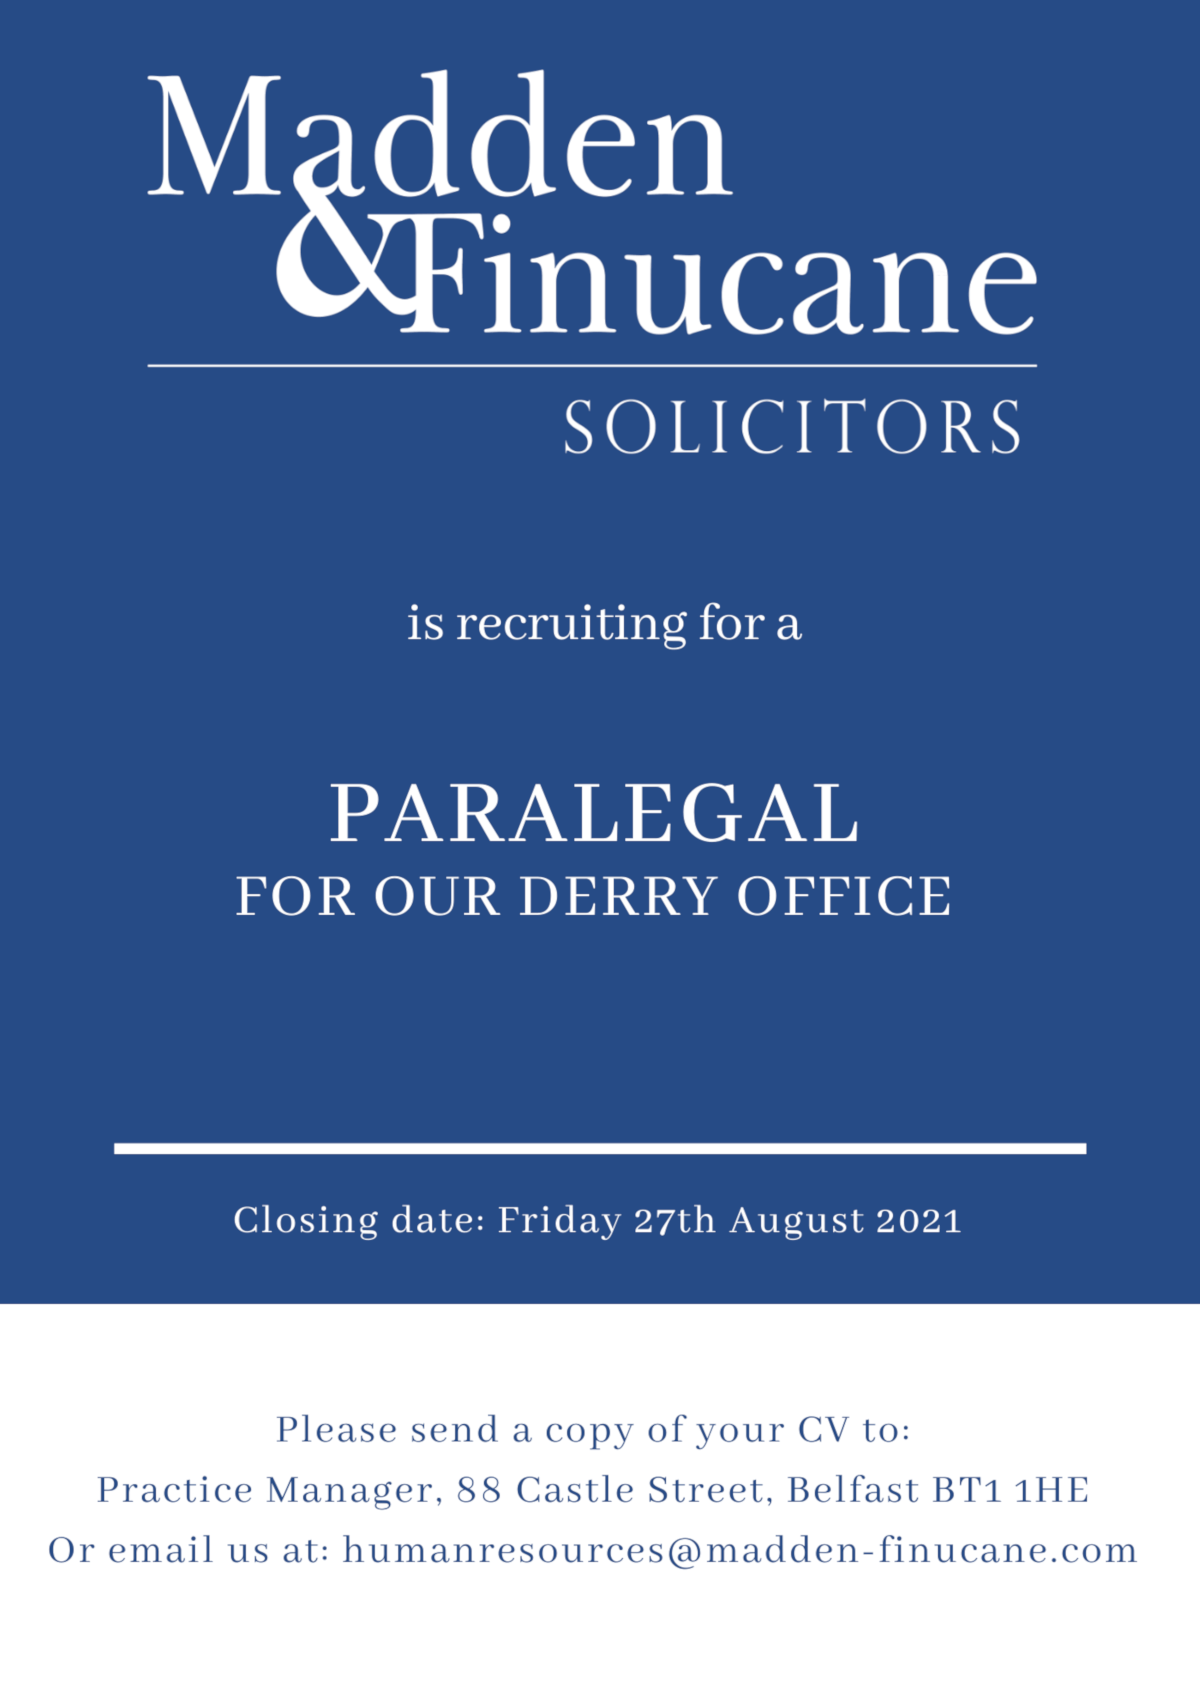 Paralegal Job Opportunity at Madden & Finucane Solicitors